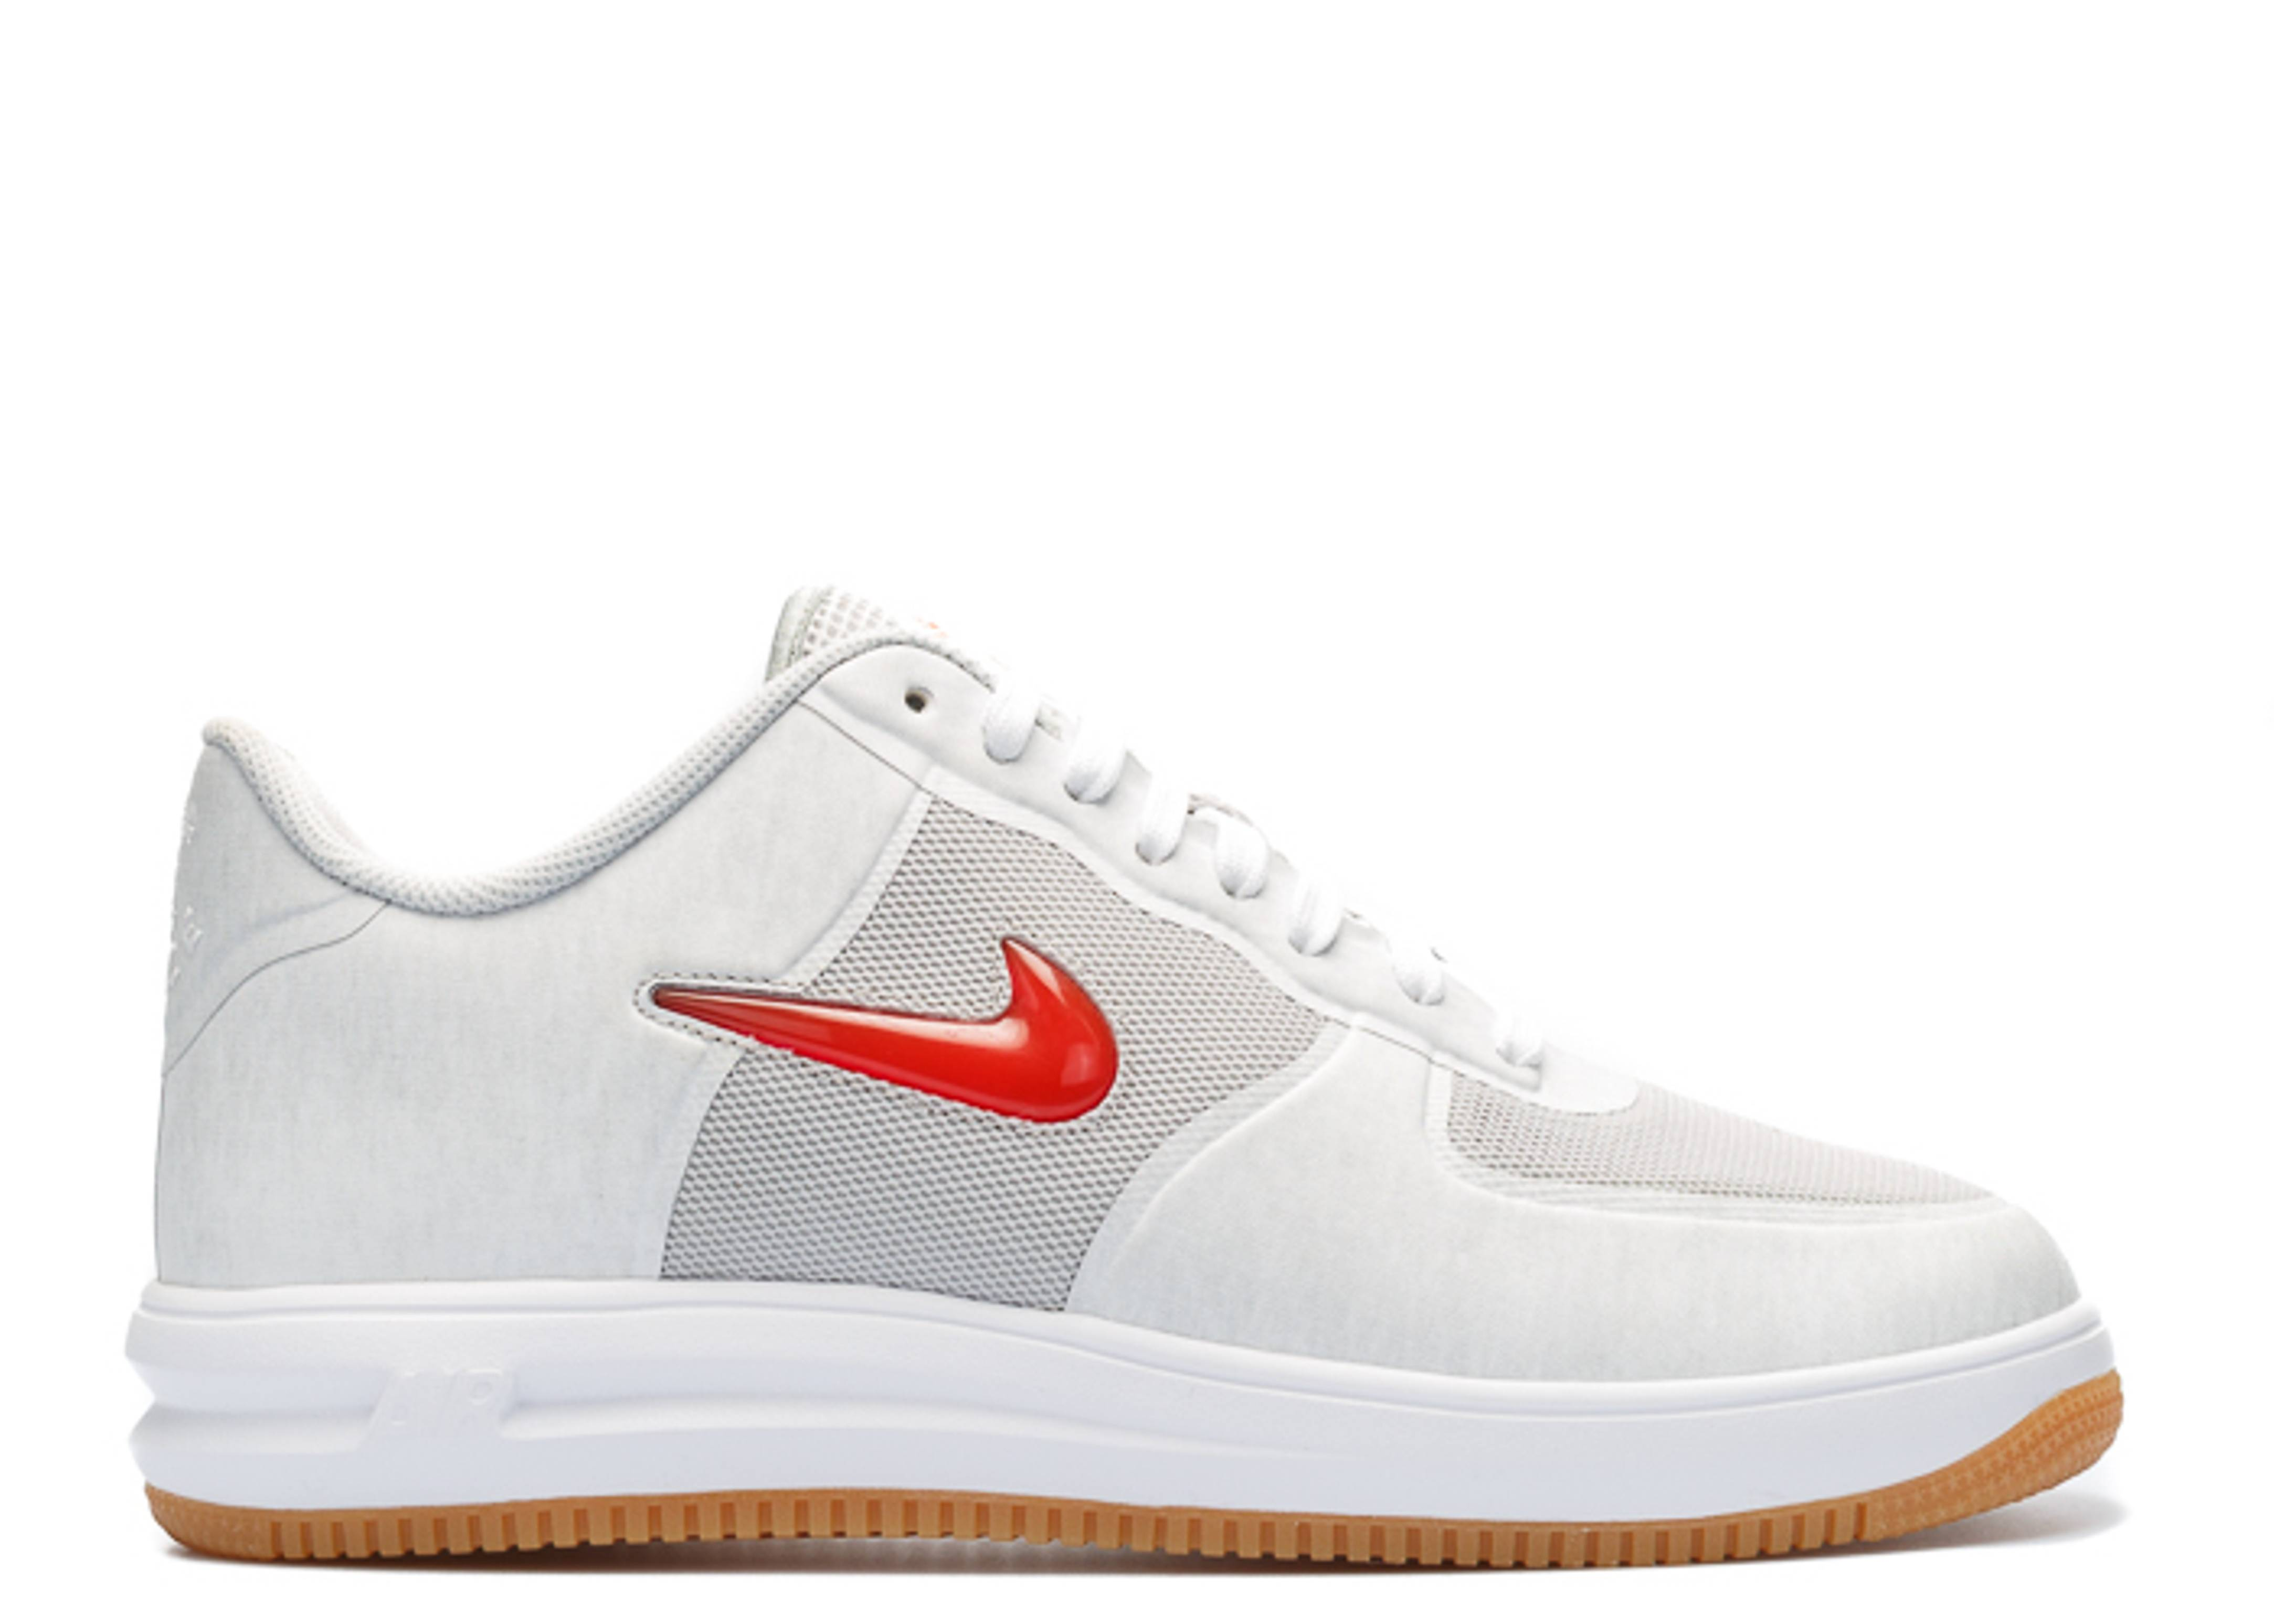 lunar force 1 fuse sp clot